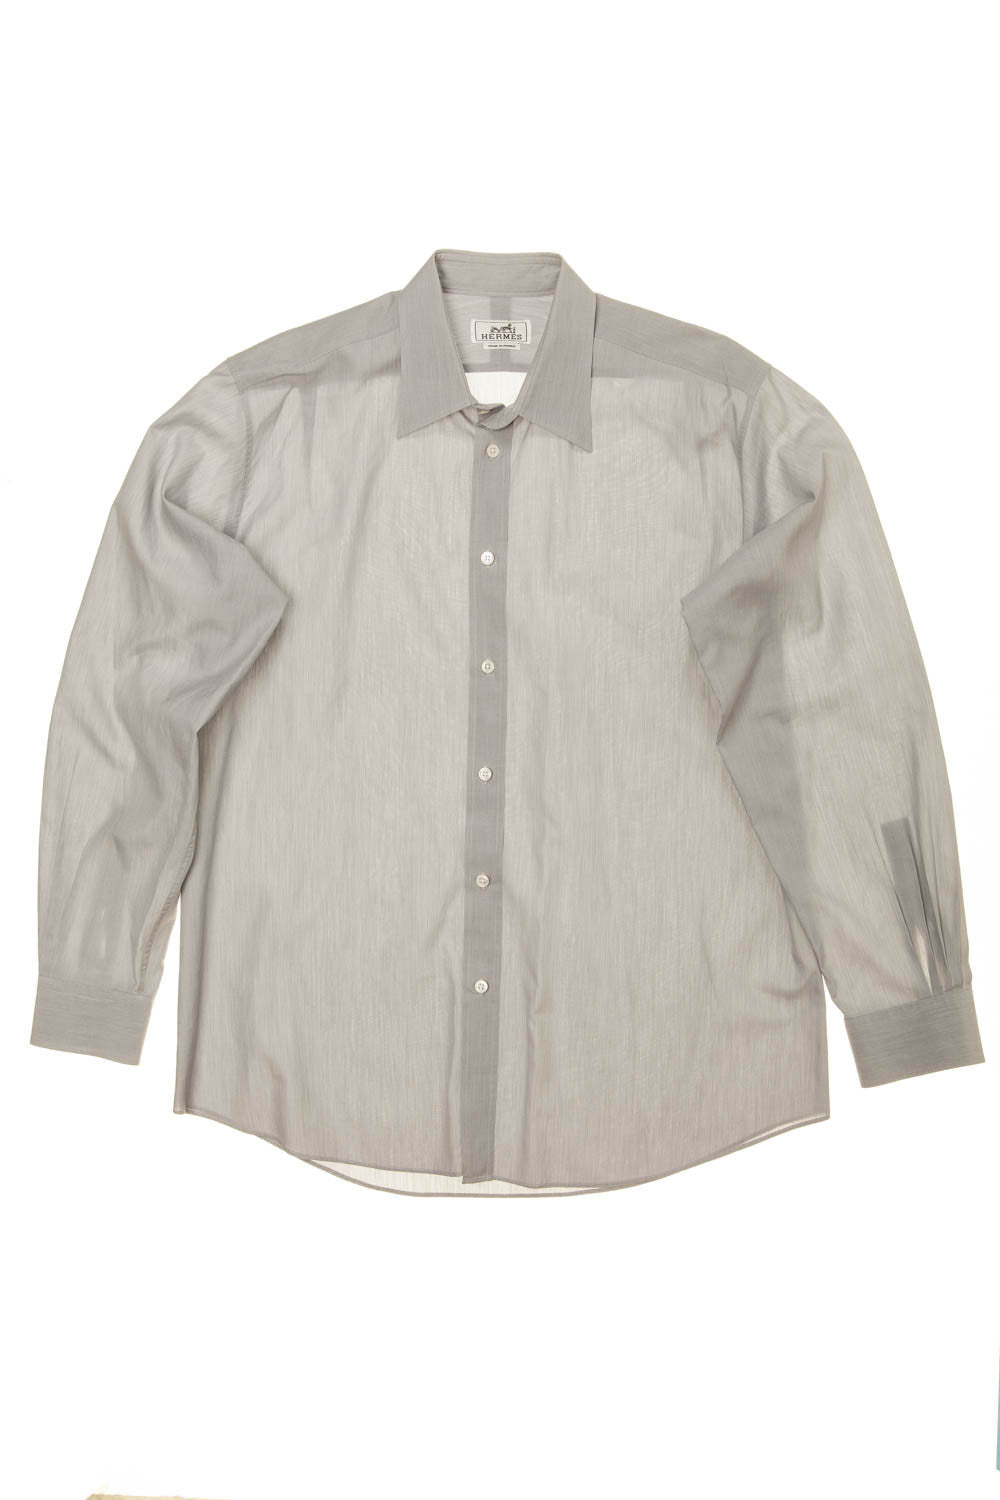 Hermes - Light Grey Men's Dress Shirt - IT 42